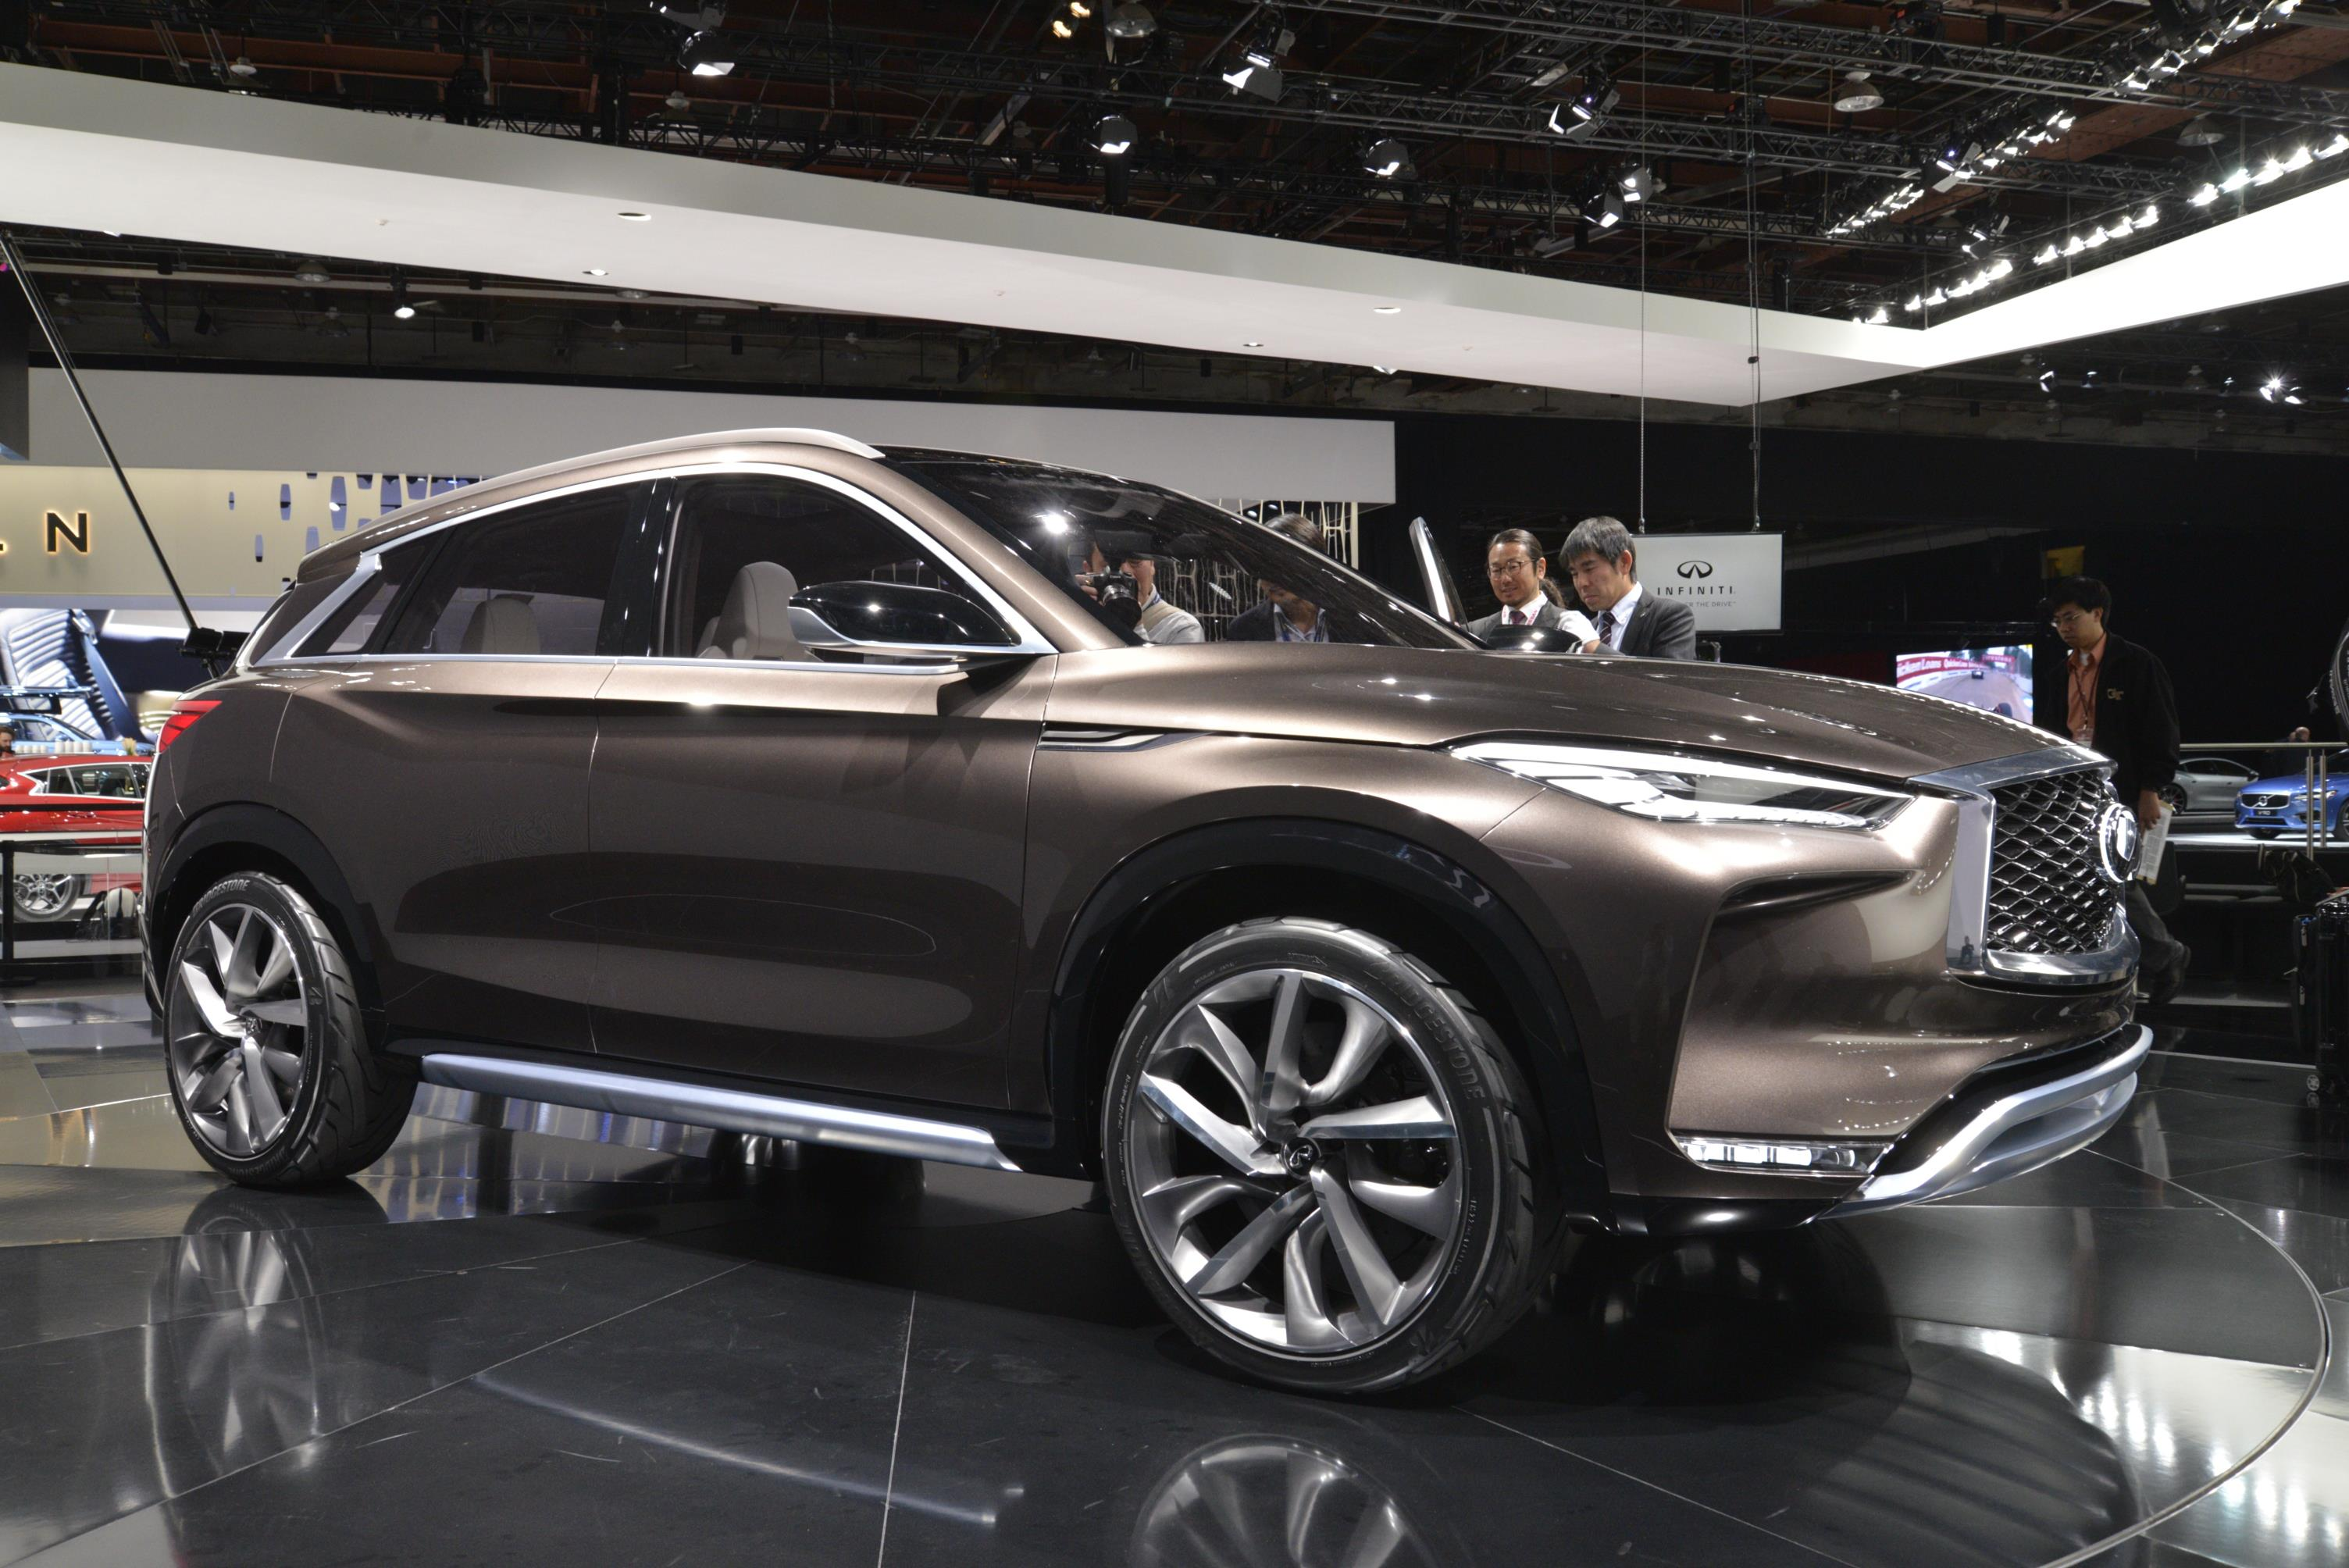 auto review the infiniti and preview of pricing infinity features roadshow automobile